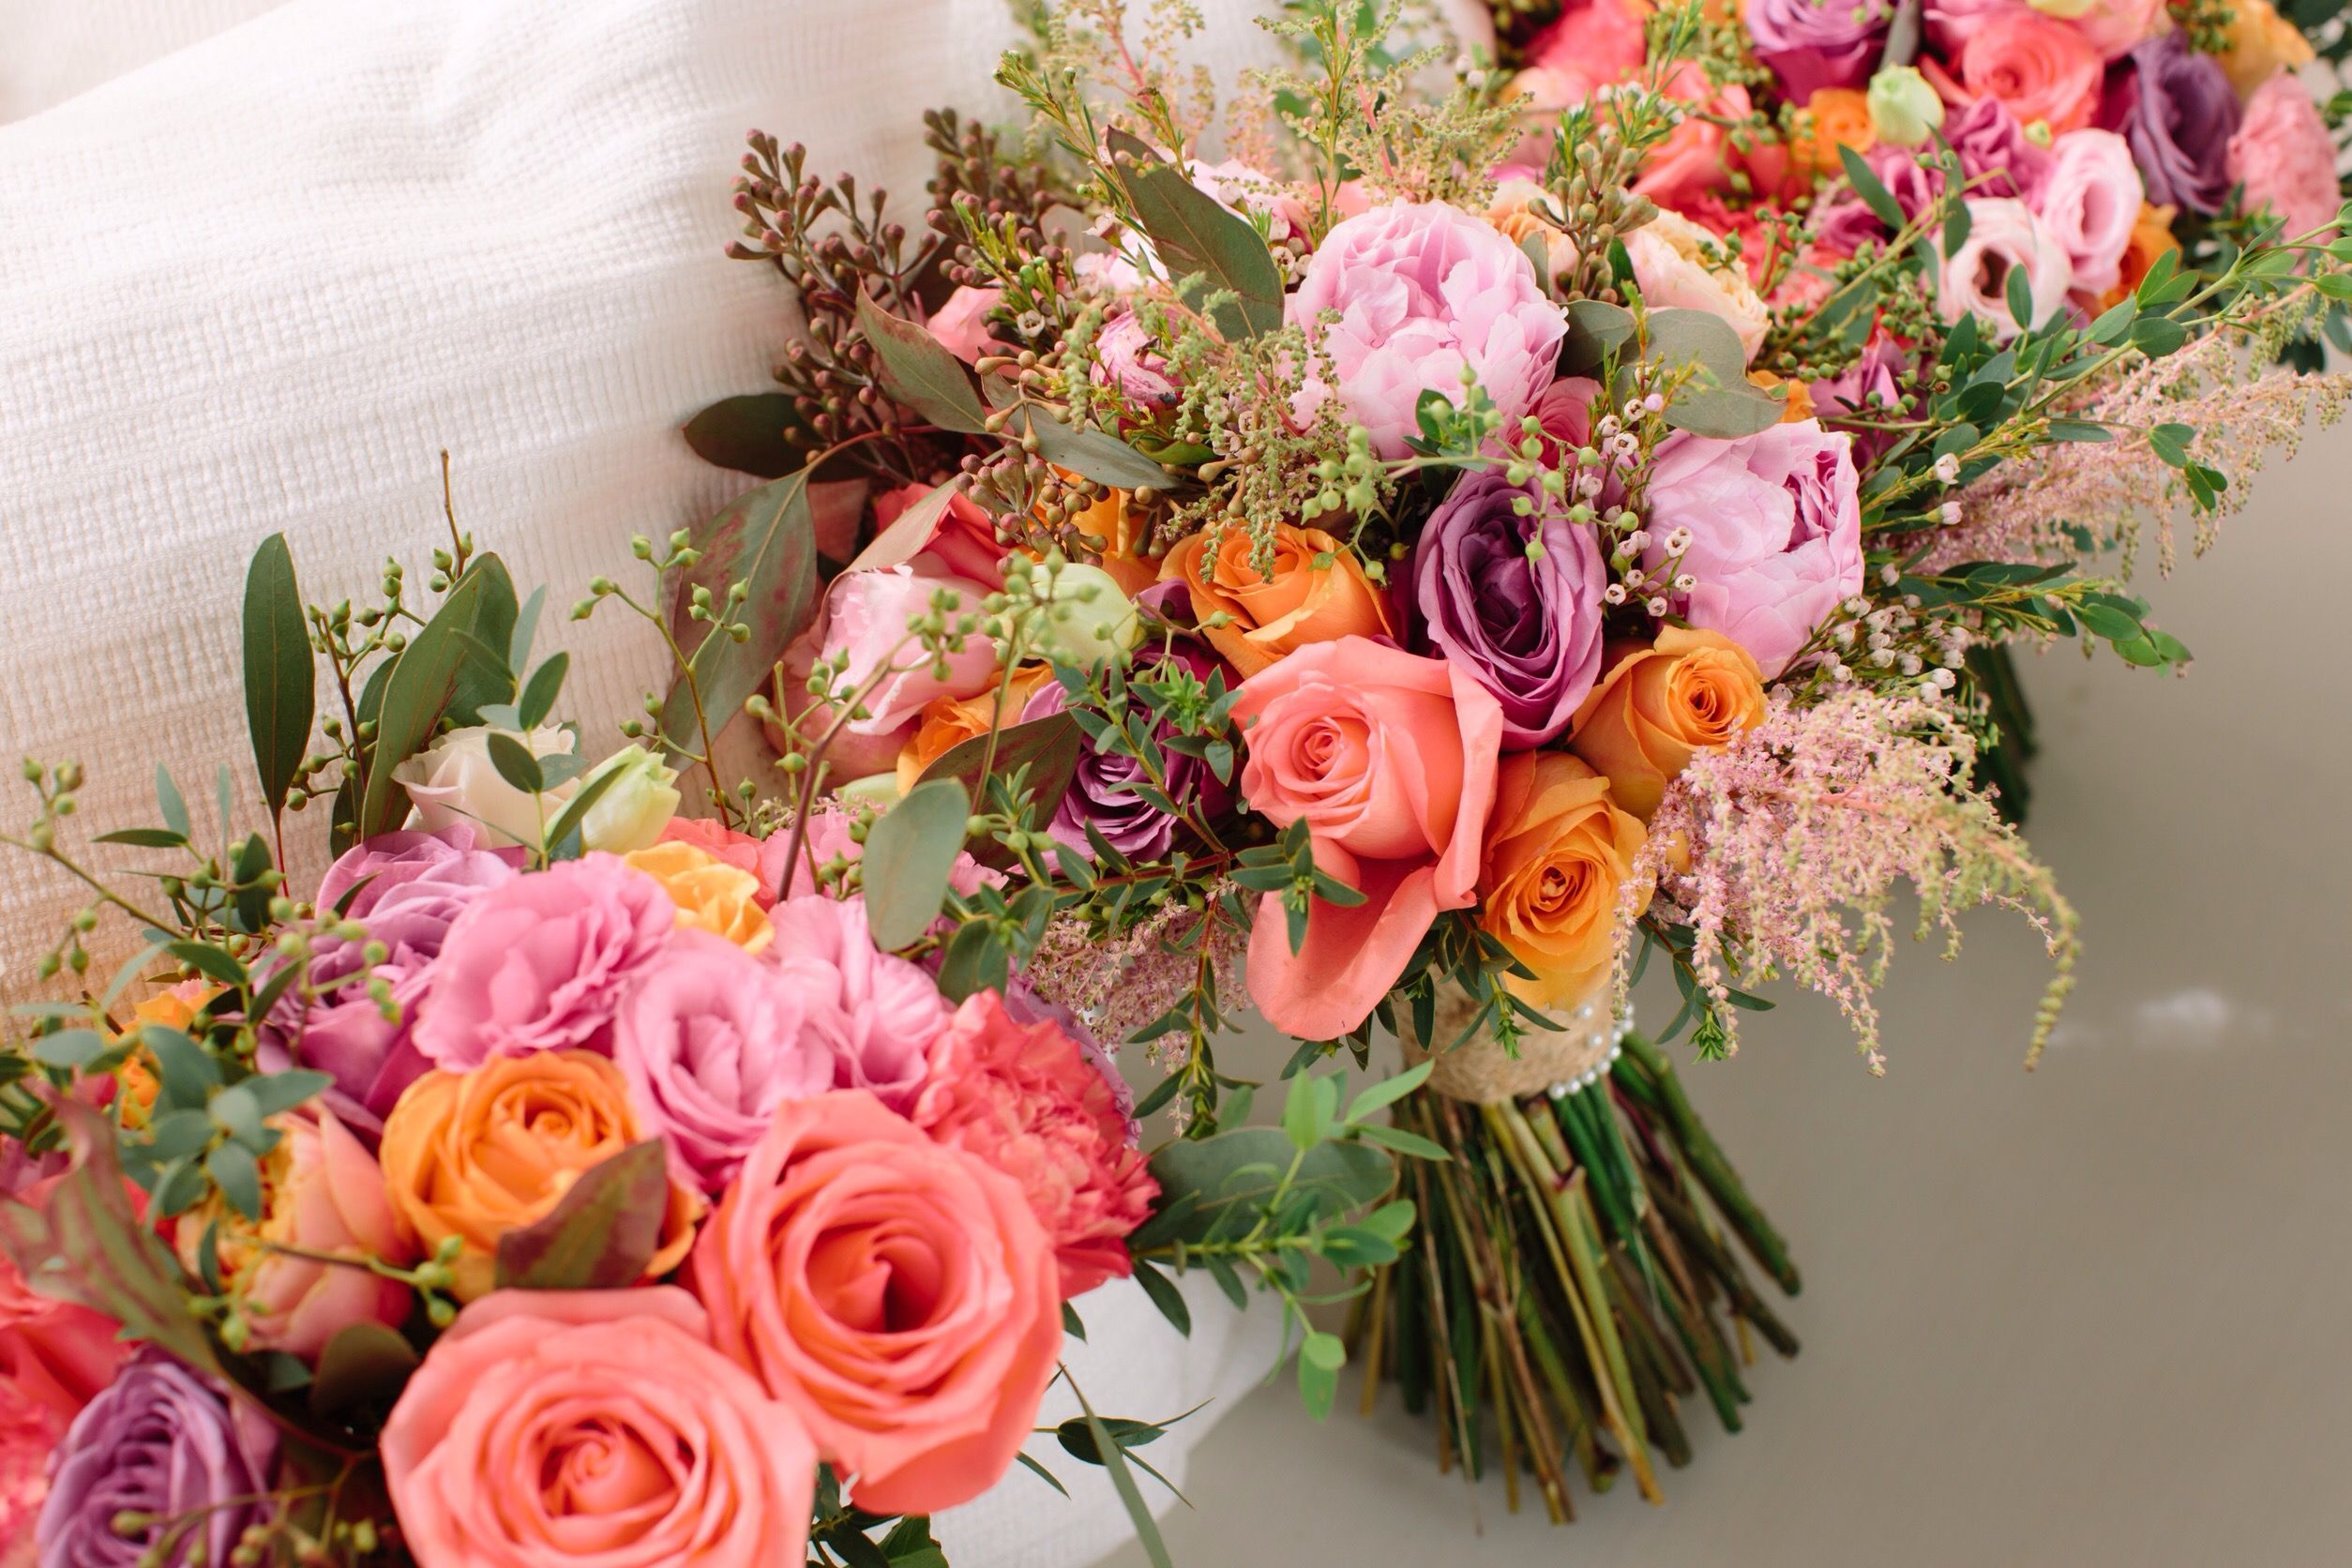 Luxury bouquet flower by candlebirdy boutique flowers luxury bouquet flower by candlebirdy boutique flowers candlebirdyboutiqueflowers line izmirmasajfo